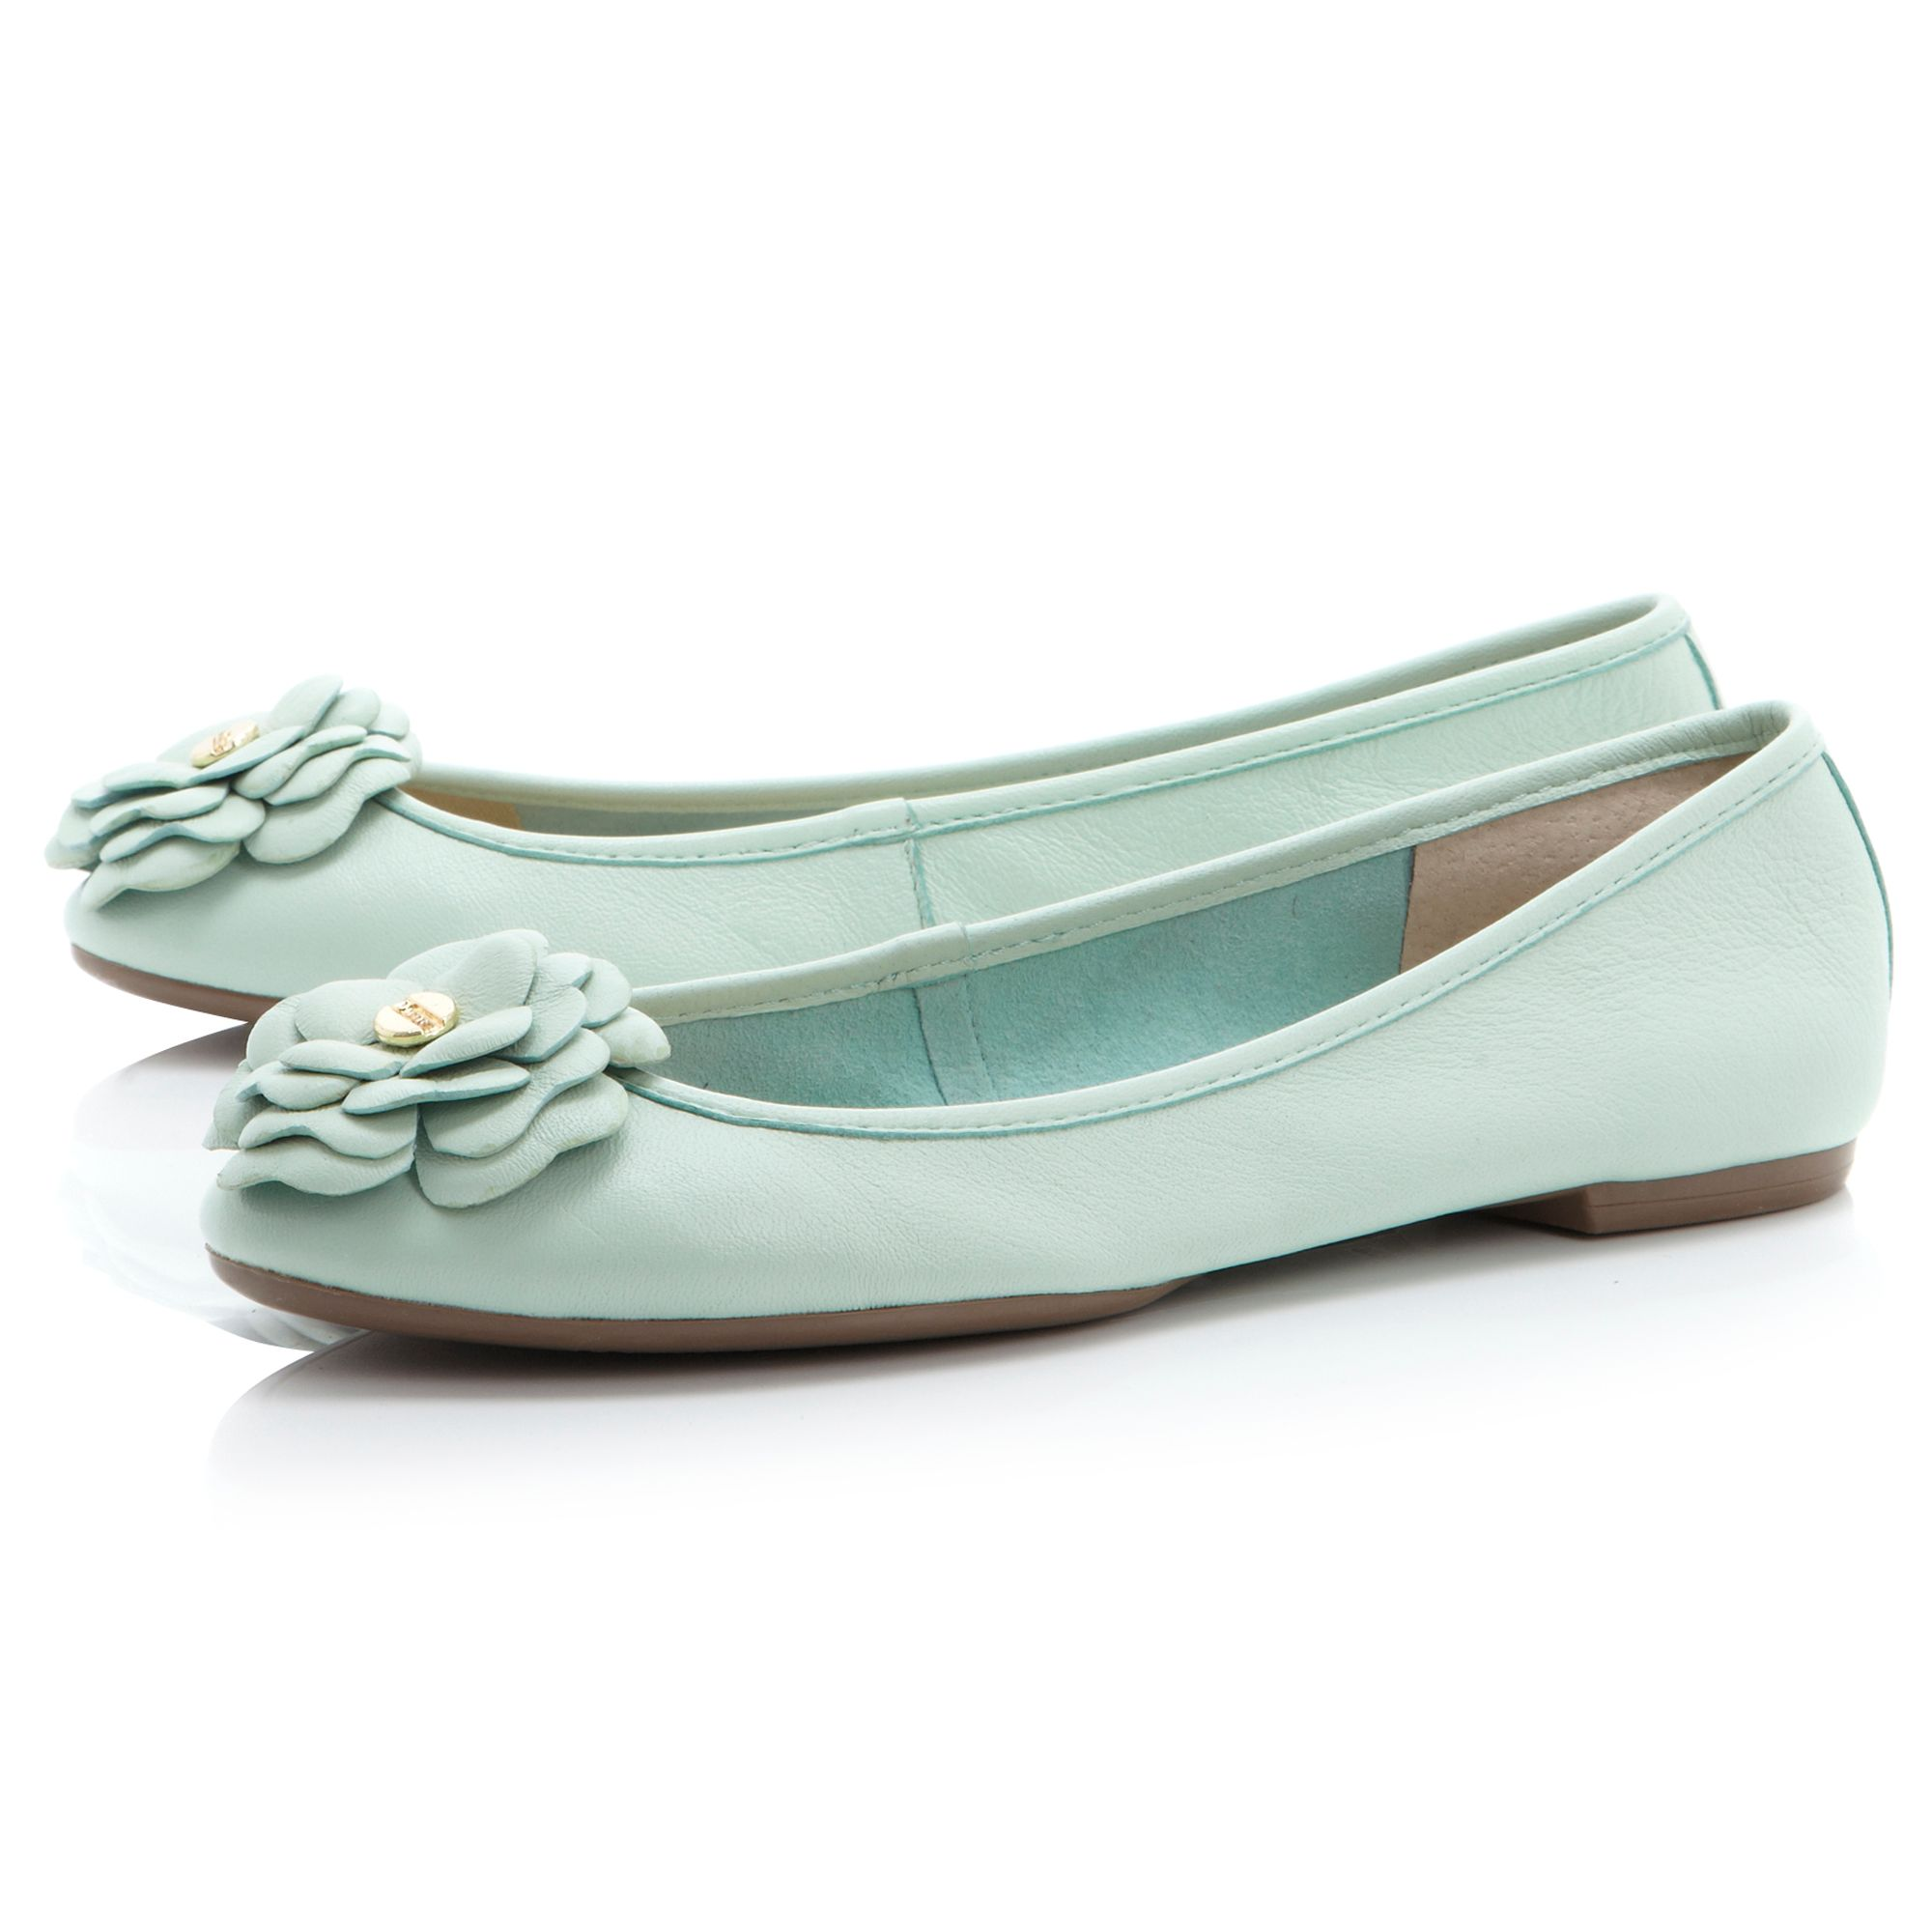 Mariah floral corsage metal trim ballerina shoes